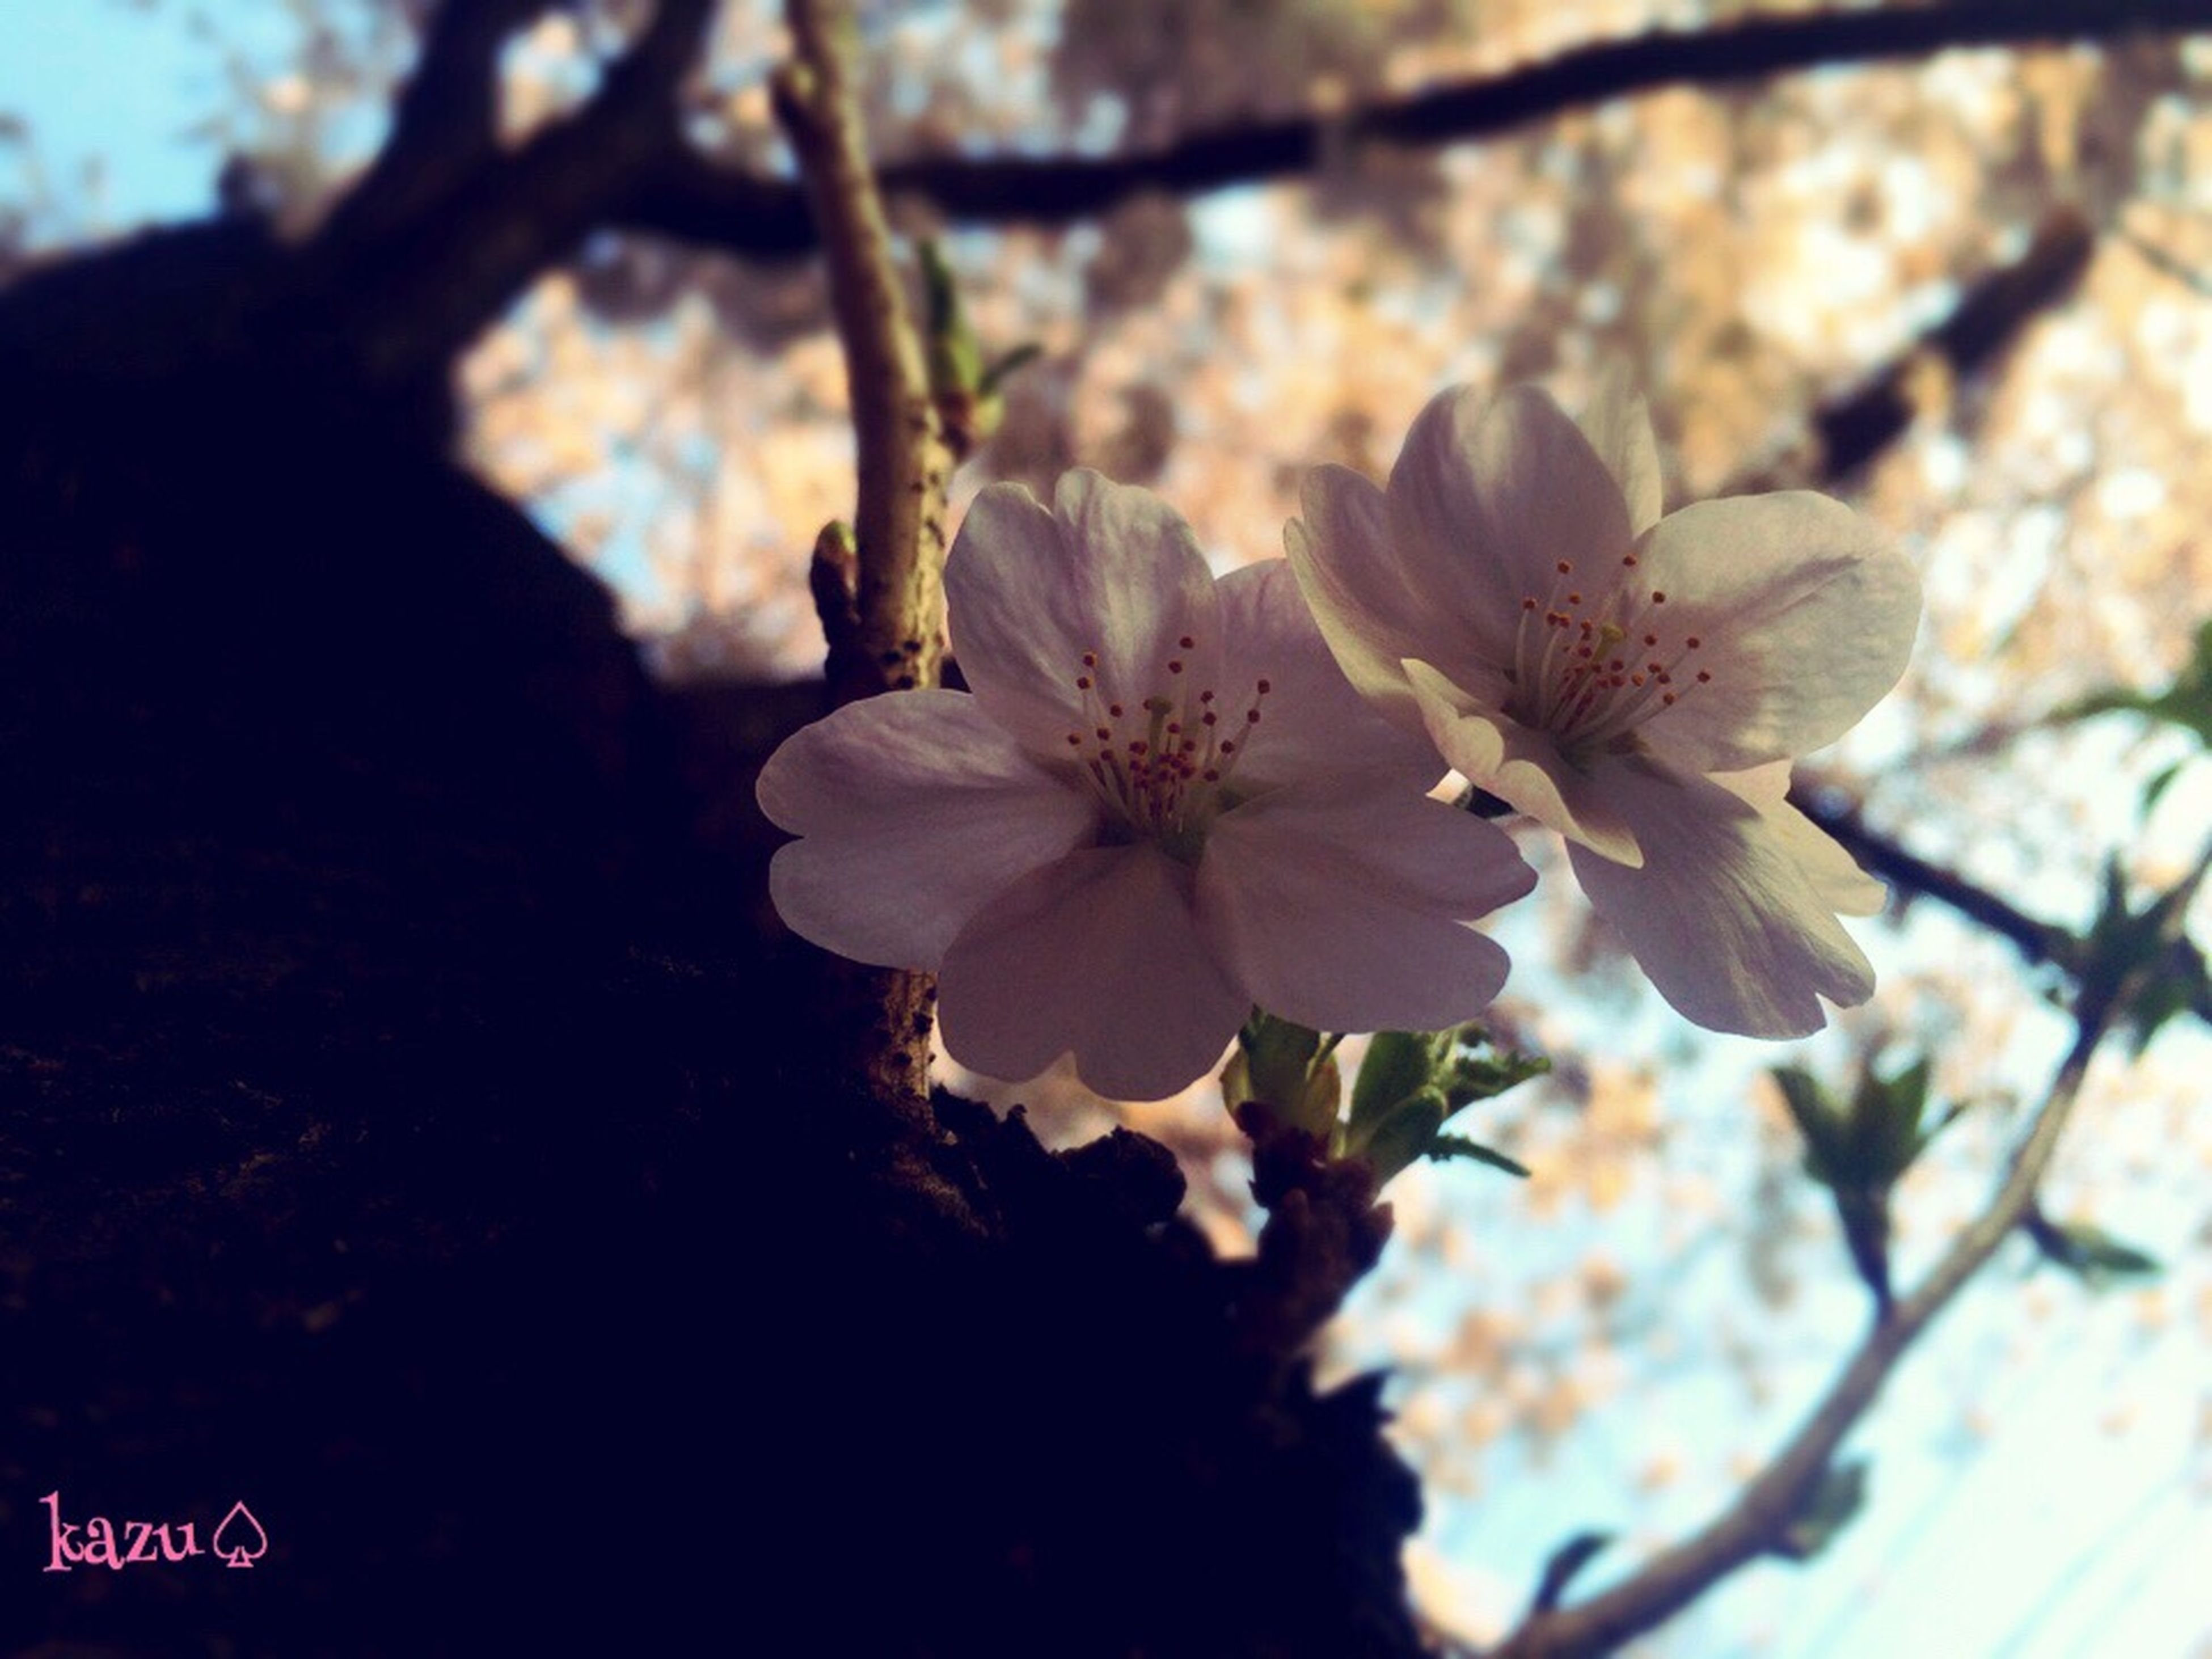 flower, growth, freshness, tree, branch, beauty in nature, fragility, nature, petal, focus on foreground, close-up, flower head, blooming, cherry blossom, blossom, in bloom, low angle view, springtime, outdoors, day